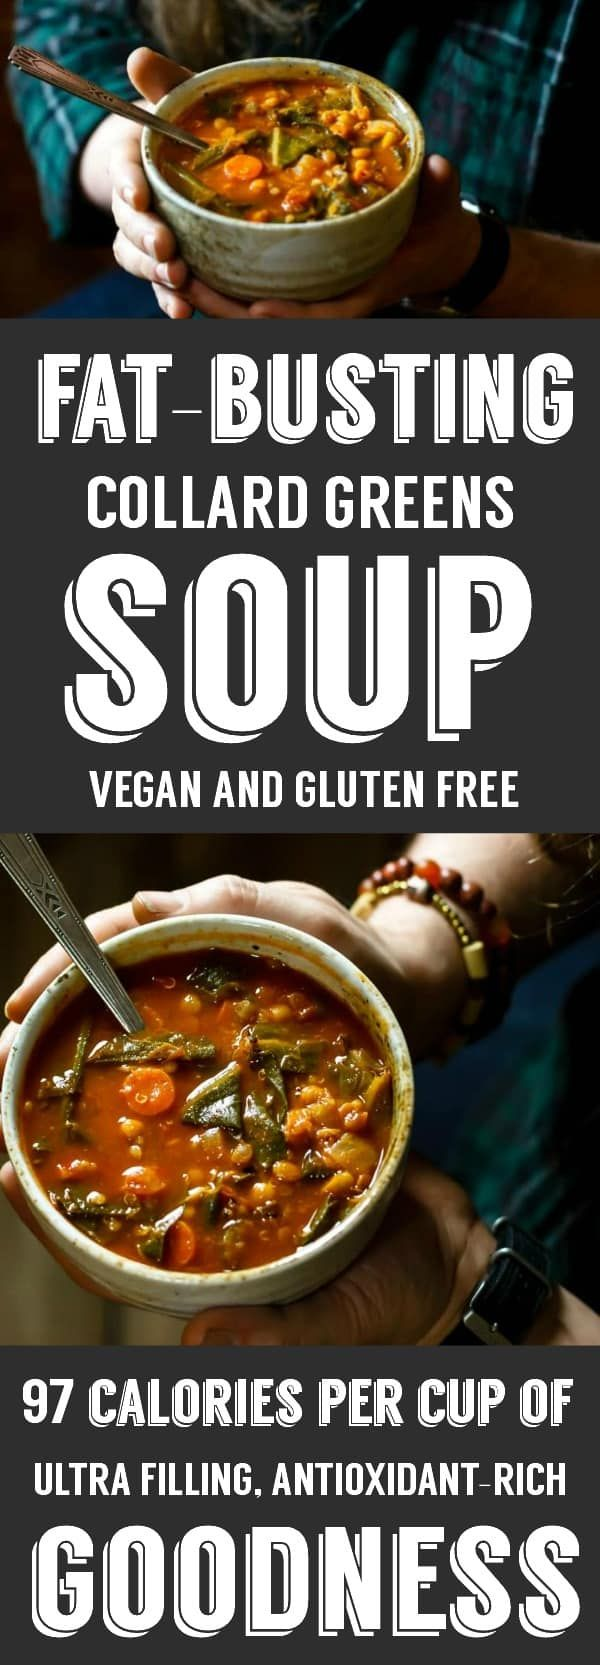 Readers love this soup, and I do too. It's one of my favorites! The ingredients make it a weight loss powerhouse, AND it's delicious!